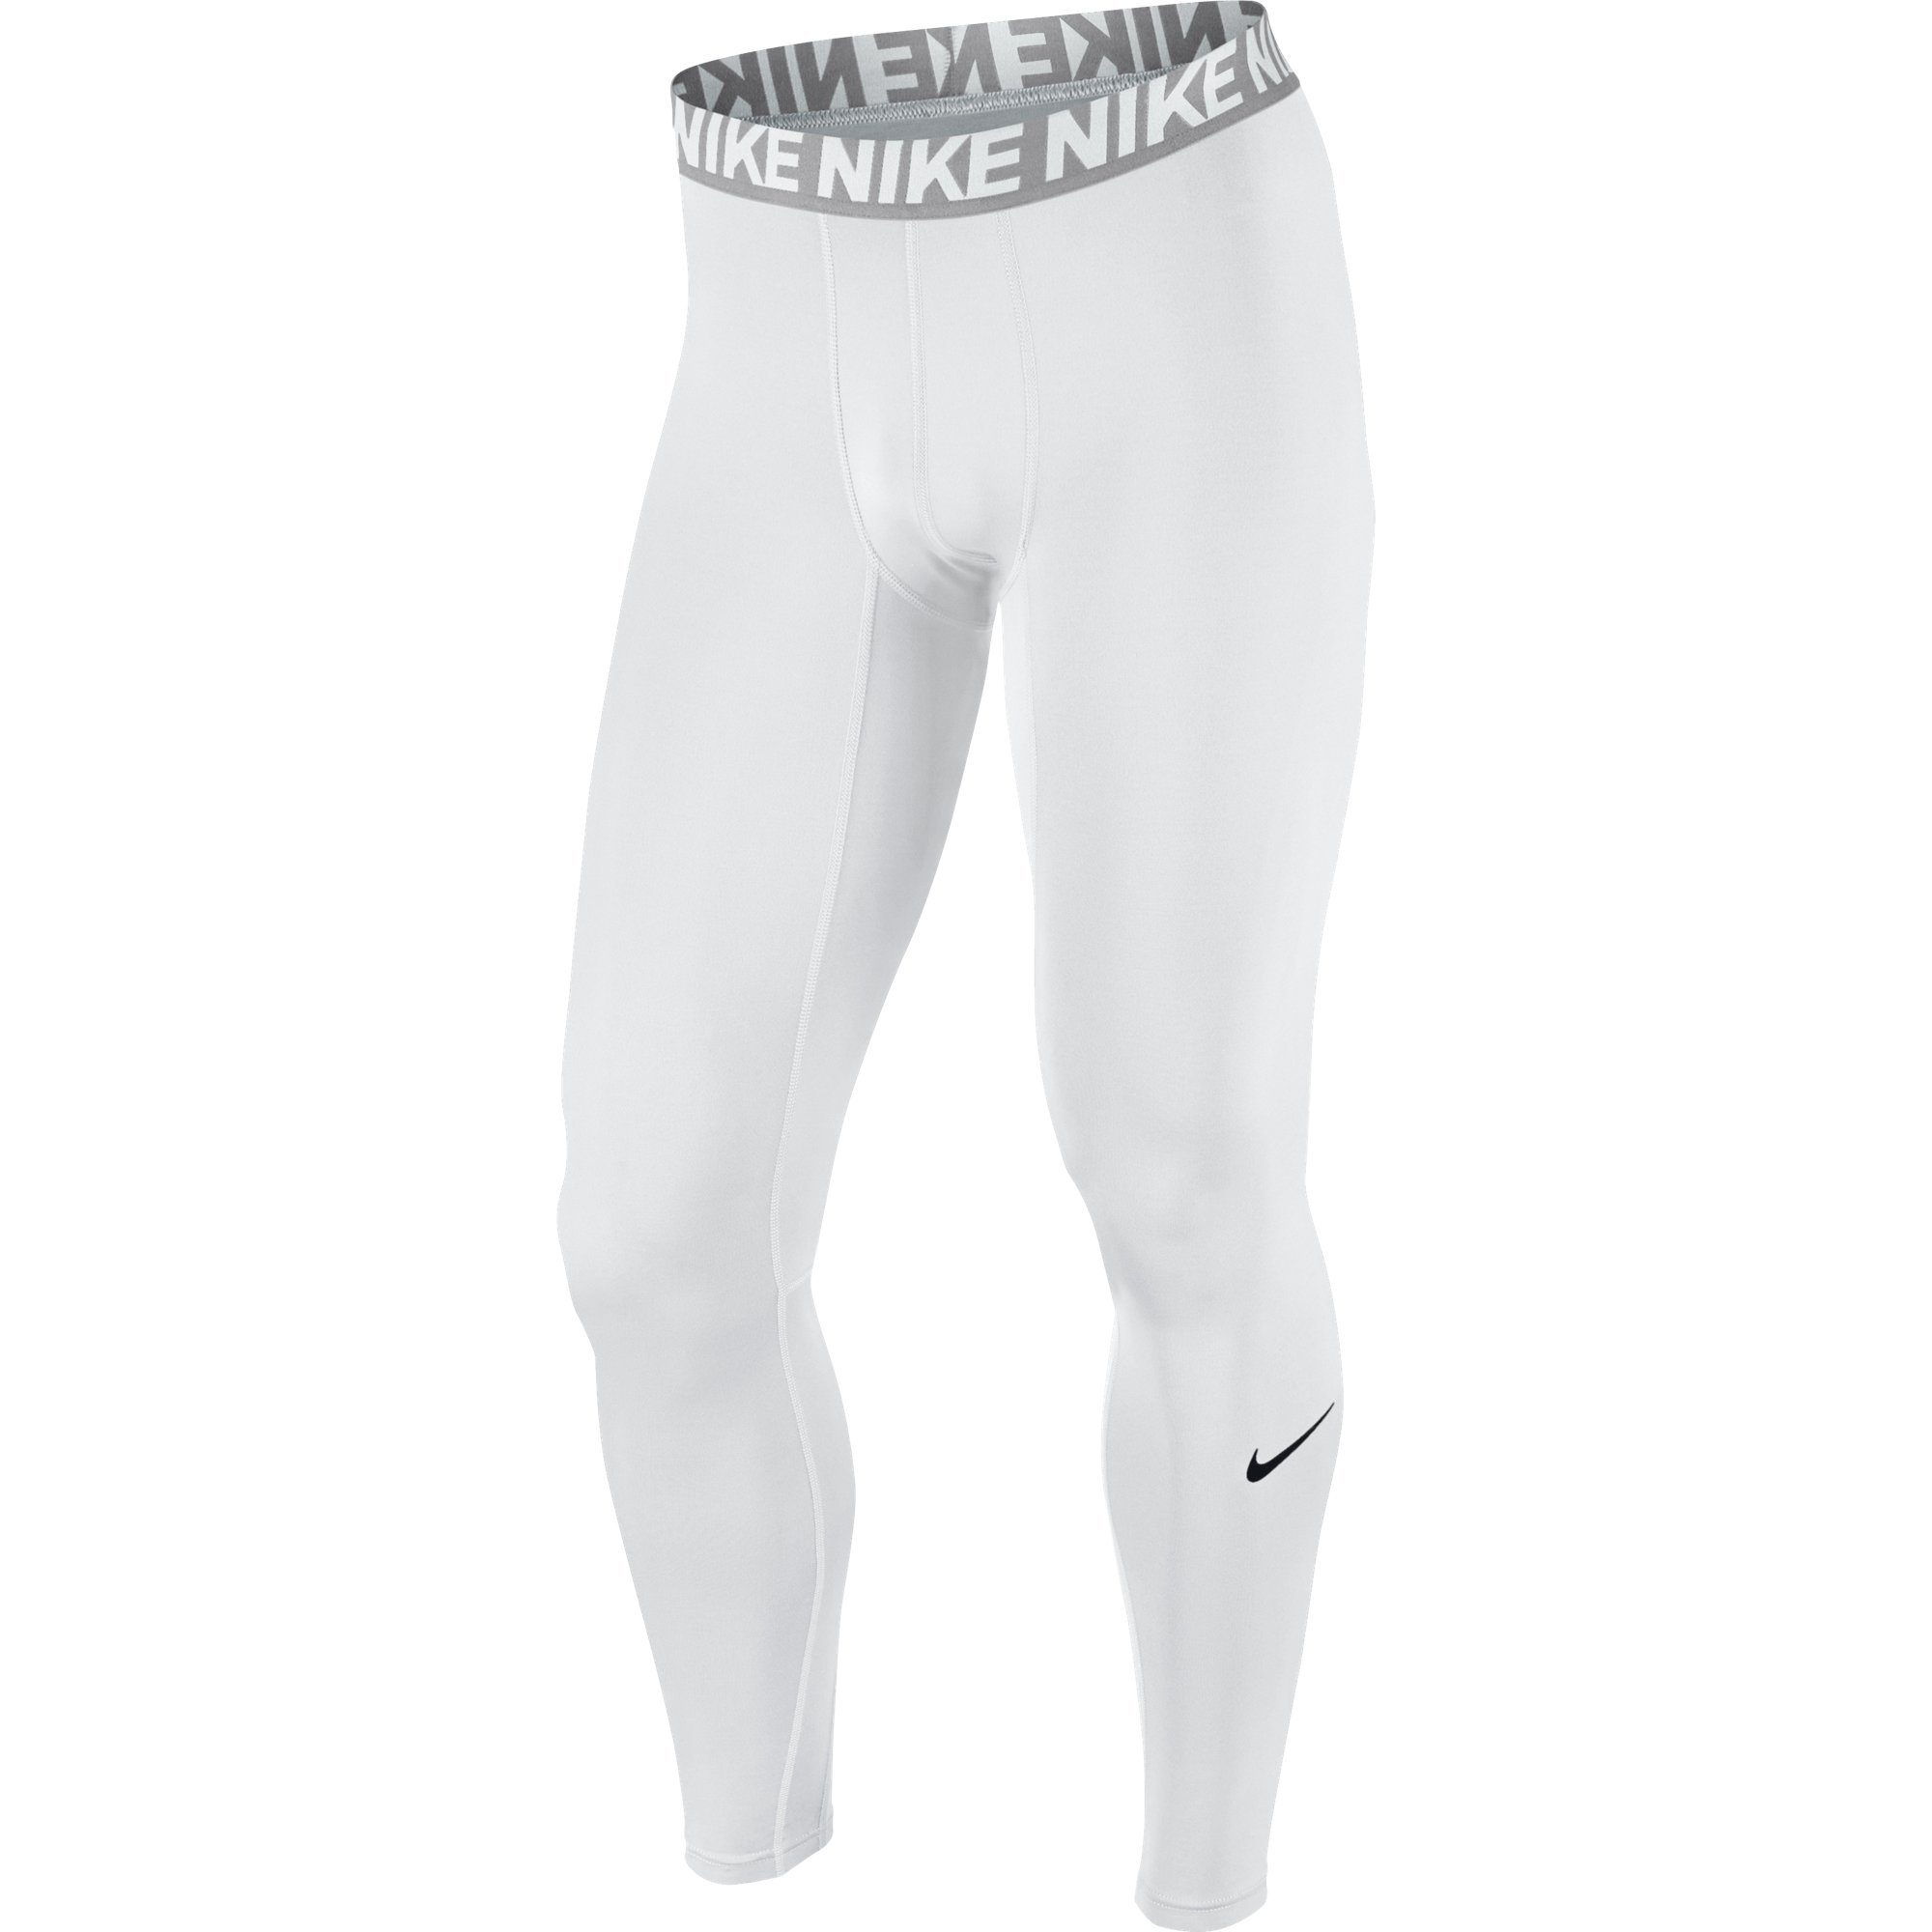 NIKE Men's Base Layer Training Tights, White/Matte Silver/White/Black, Small Tall